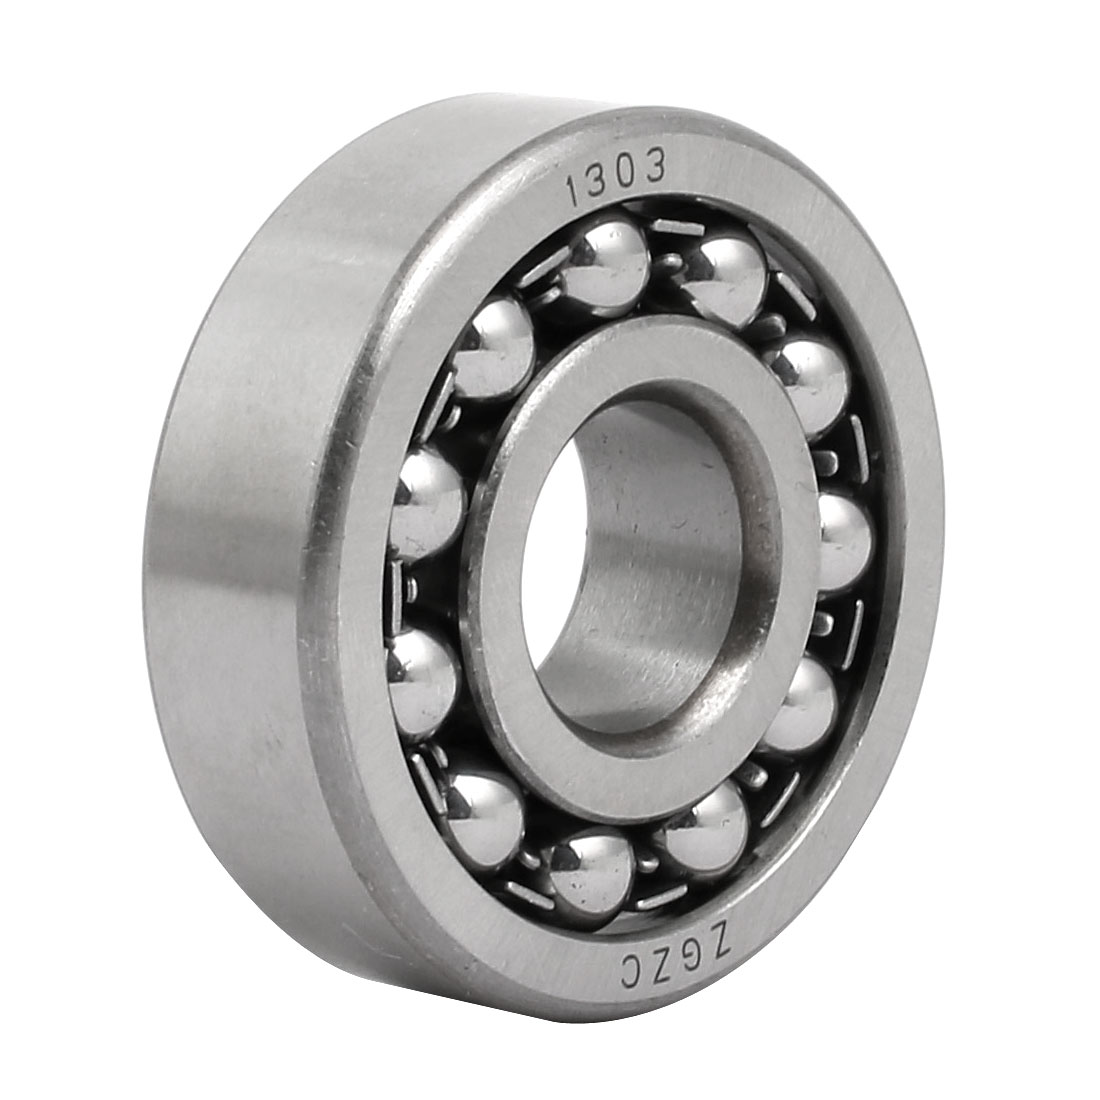 17mm Inner Dia 47mm OD 14mm Thickness Self Aligning Ball Bearing 1303